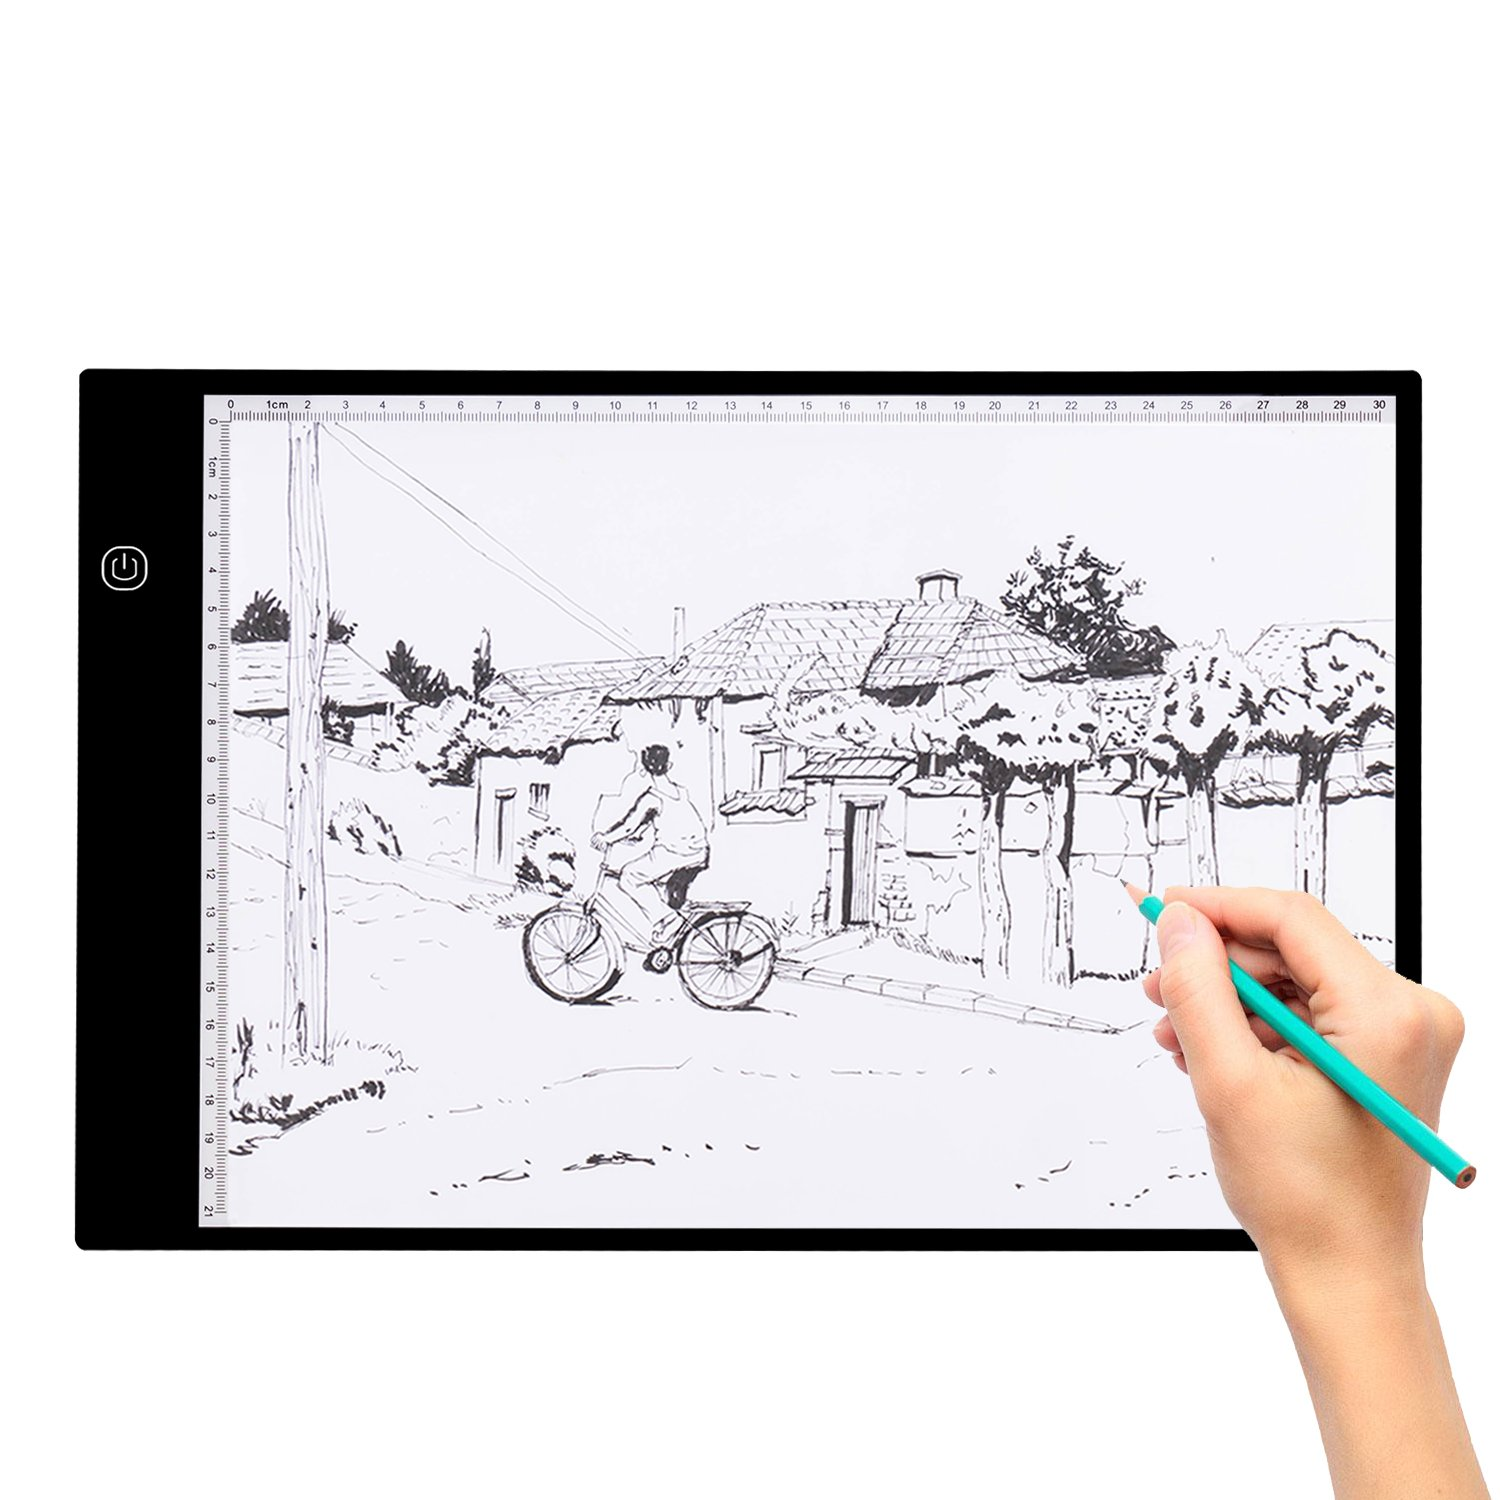 Adjustable Brightness A4 Ultra Thin LED Light Box Tracer USB Powered for Artists Drawing Sketching Animation Designing X-ray Viewing Spaco Ltd